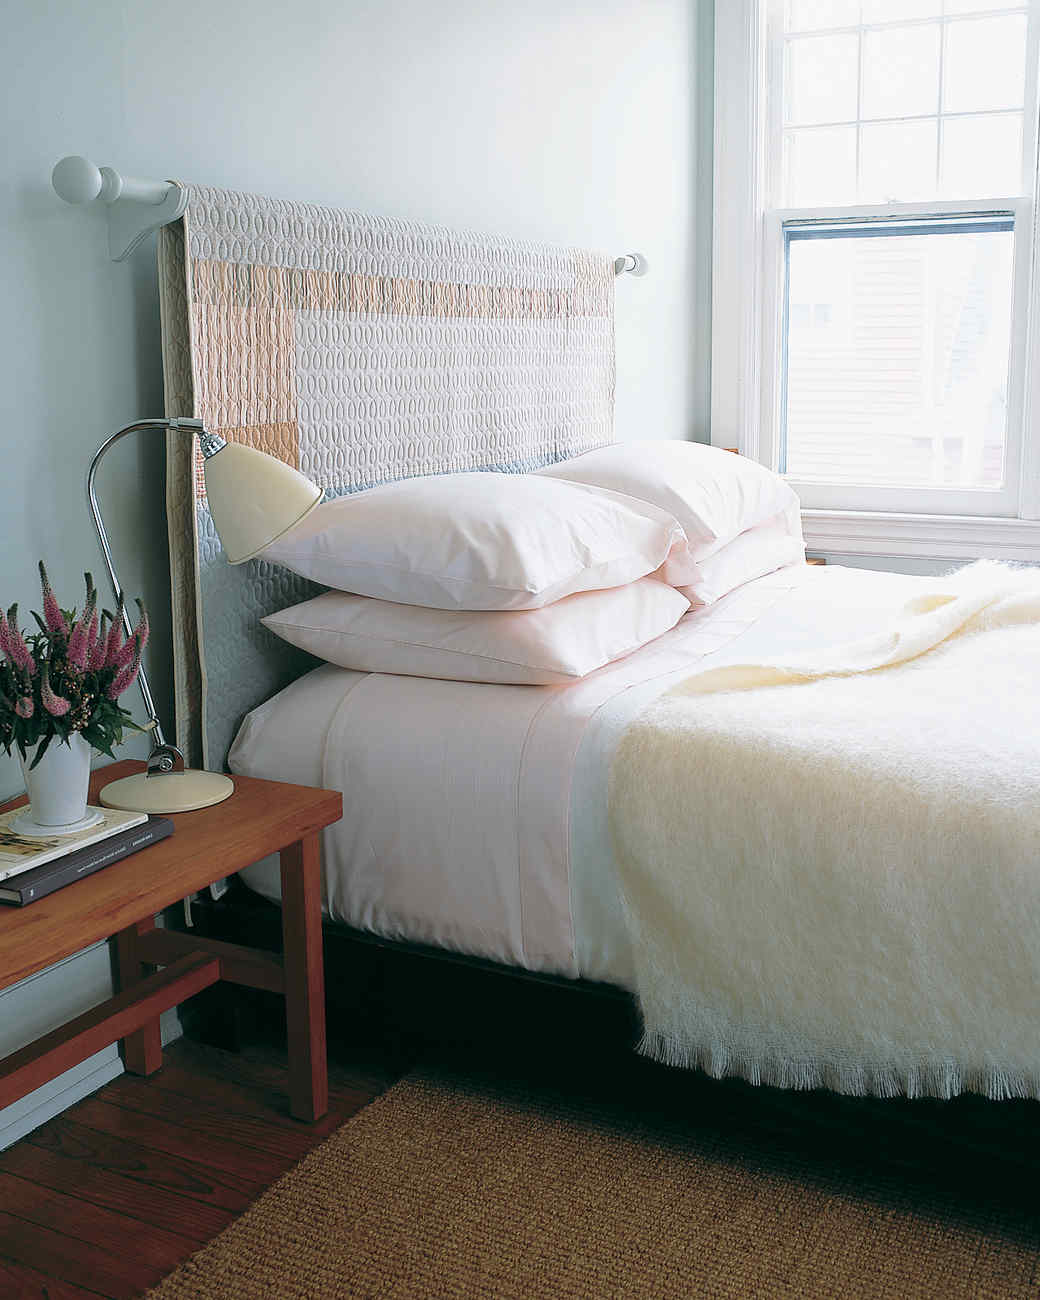 10 DIY Headboard Ideas to Give Your Bed a Boost | Martha Stewart